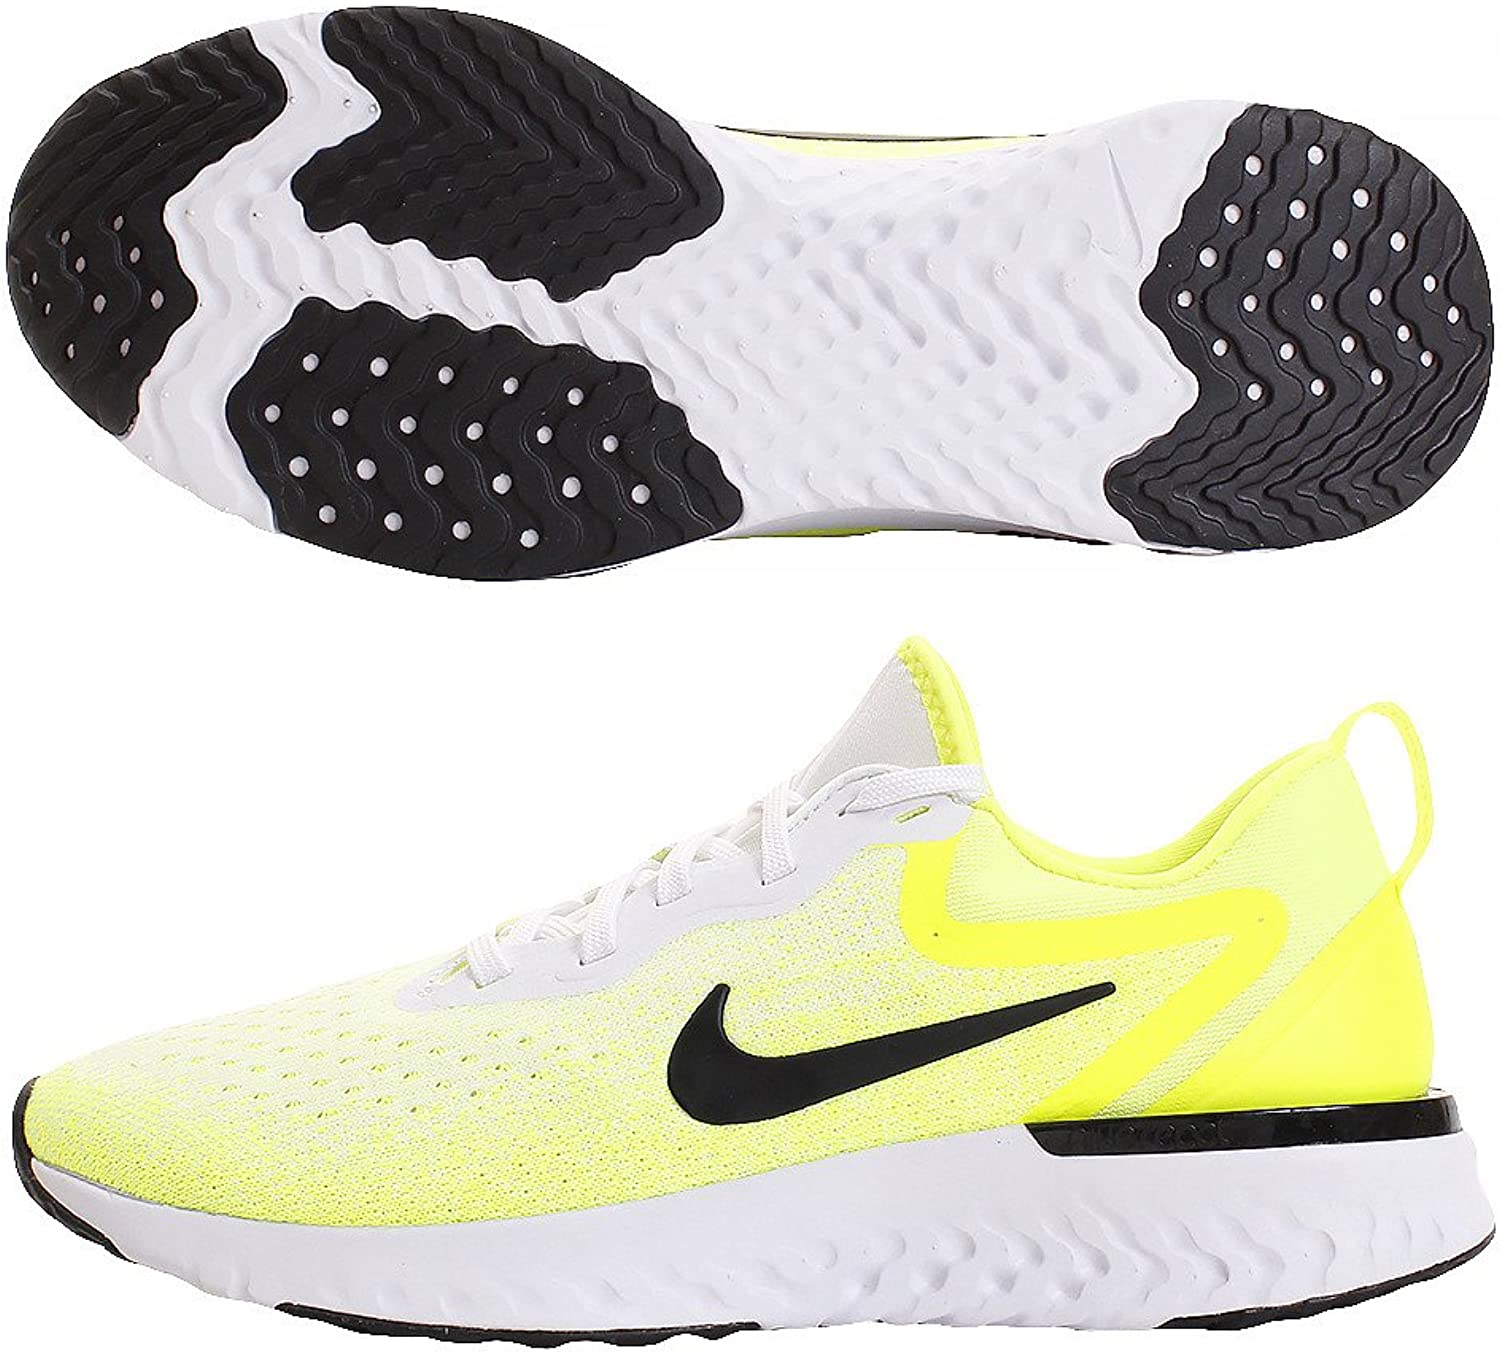 Nike Odyssey React - Men's White Black Volt Bright Crimson Nylon Running shoes